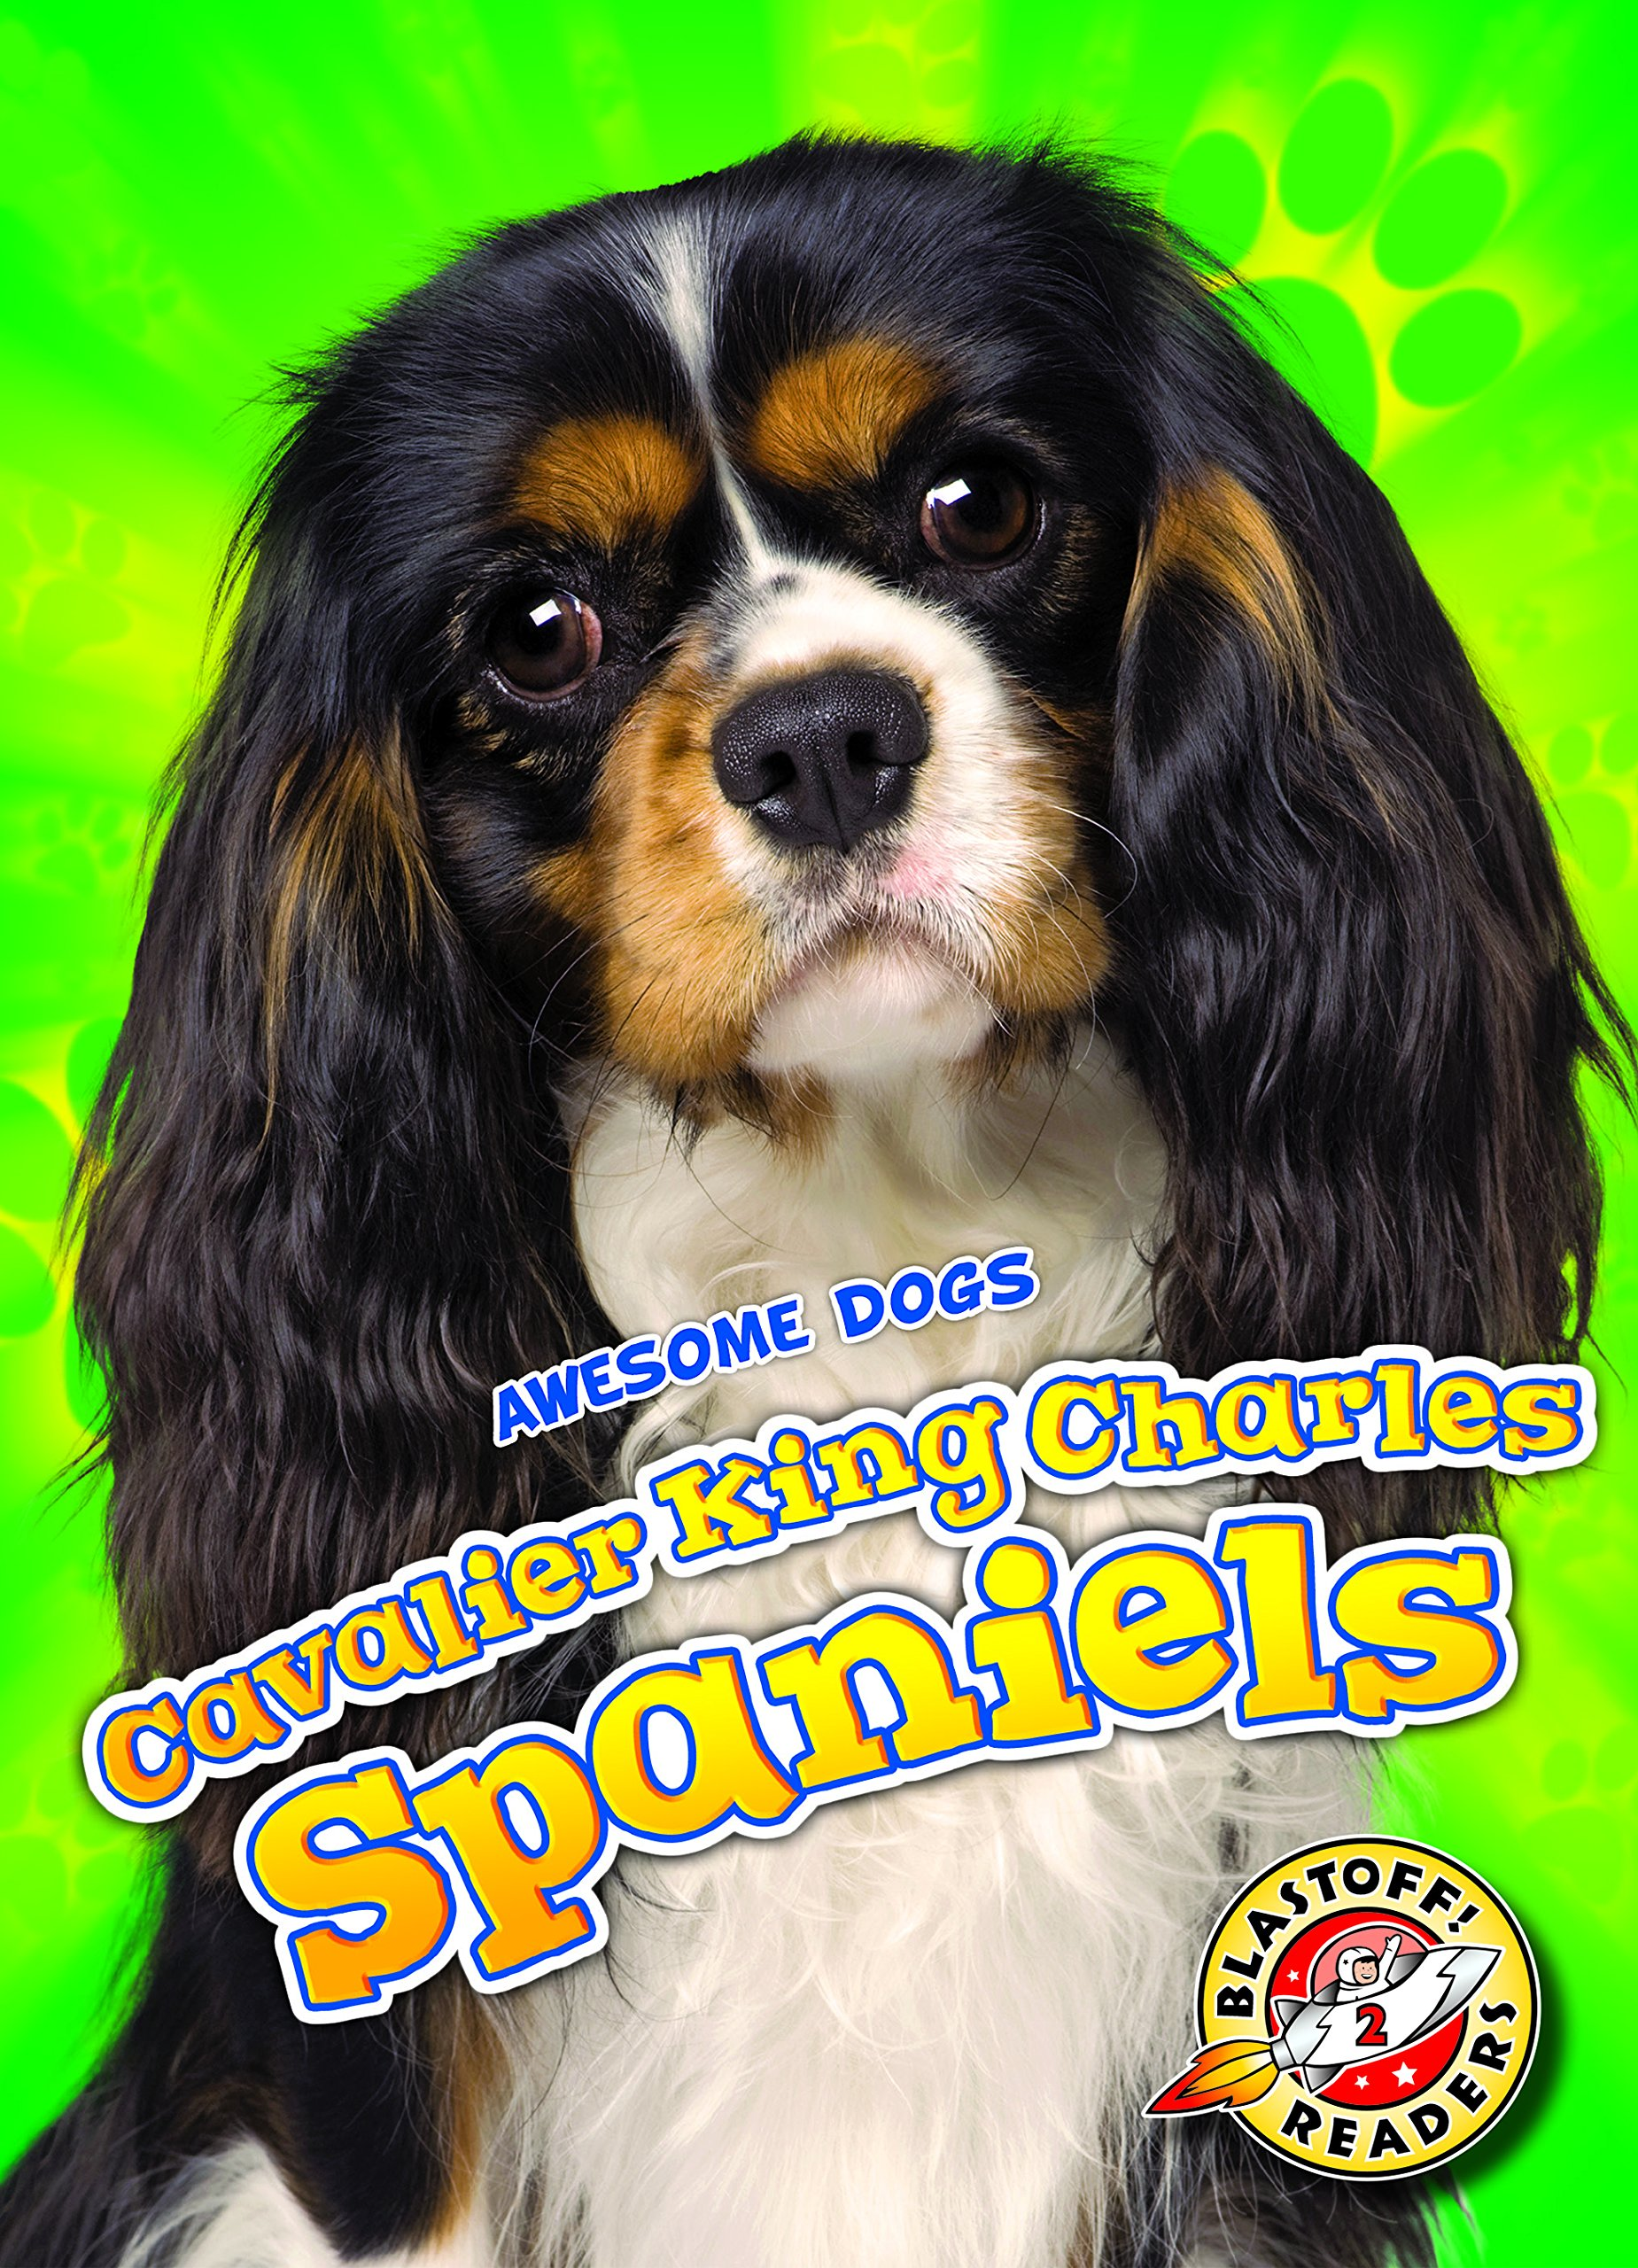 Cavalier King Charles Spaniels (Awesome Dogs: Blastoff Readers. Level 2) pdf